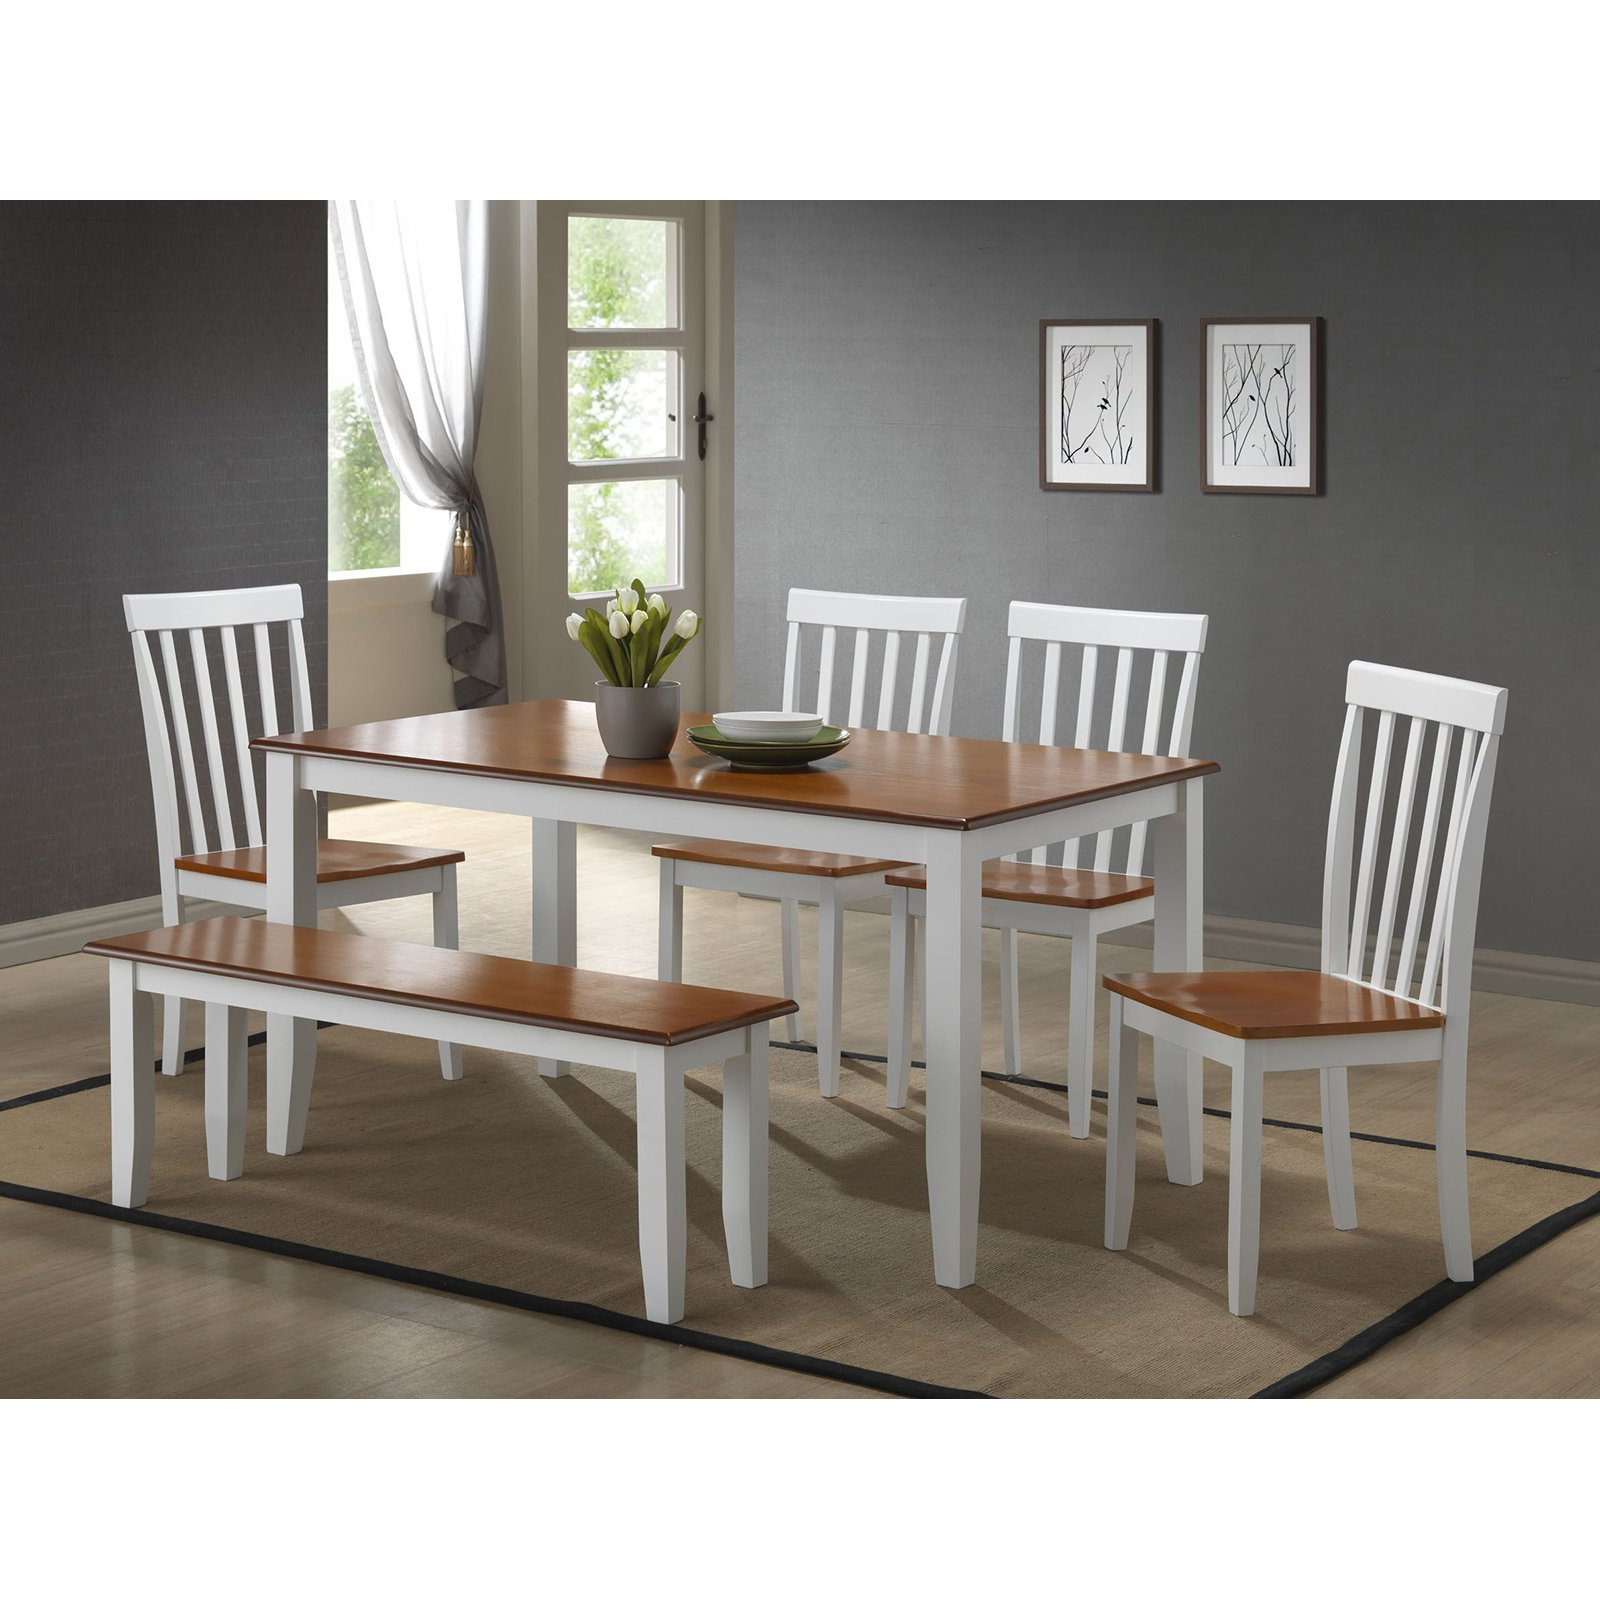 Boraam Bloomington 6 Piece Dining Set, Multiple Colors